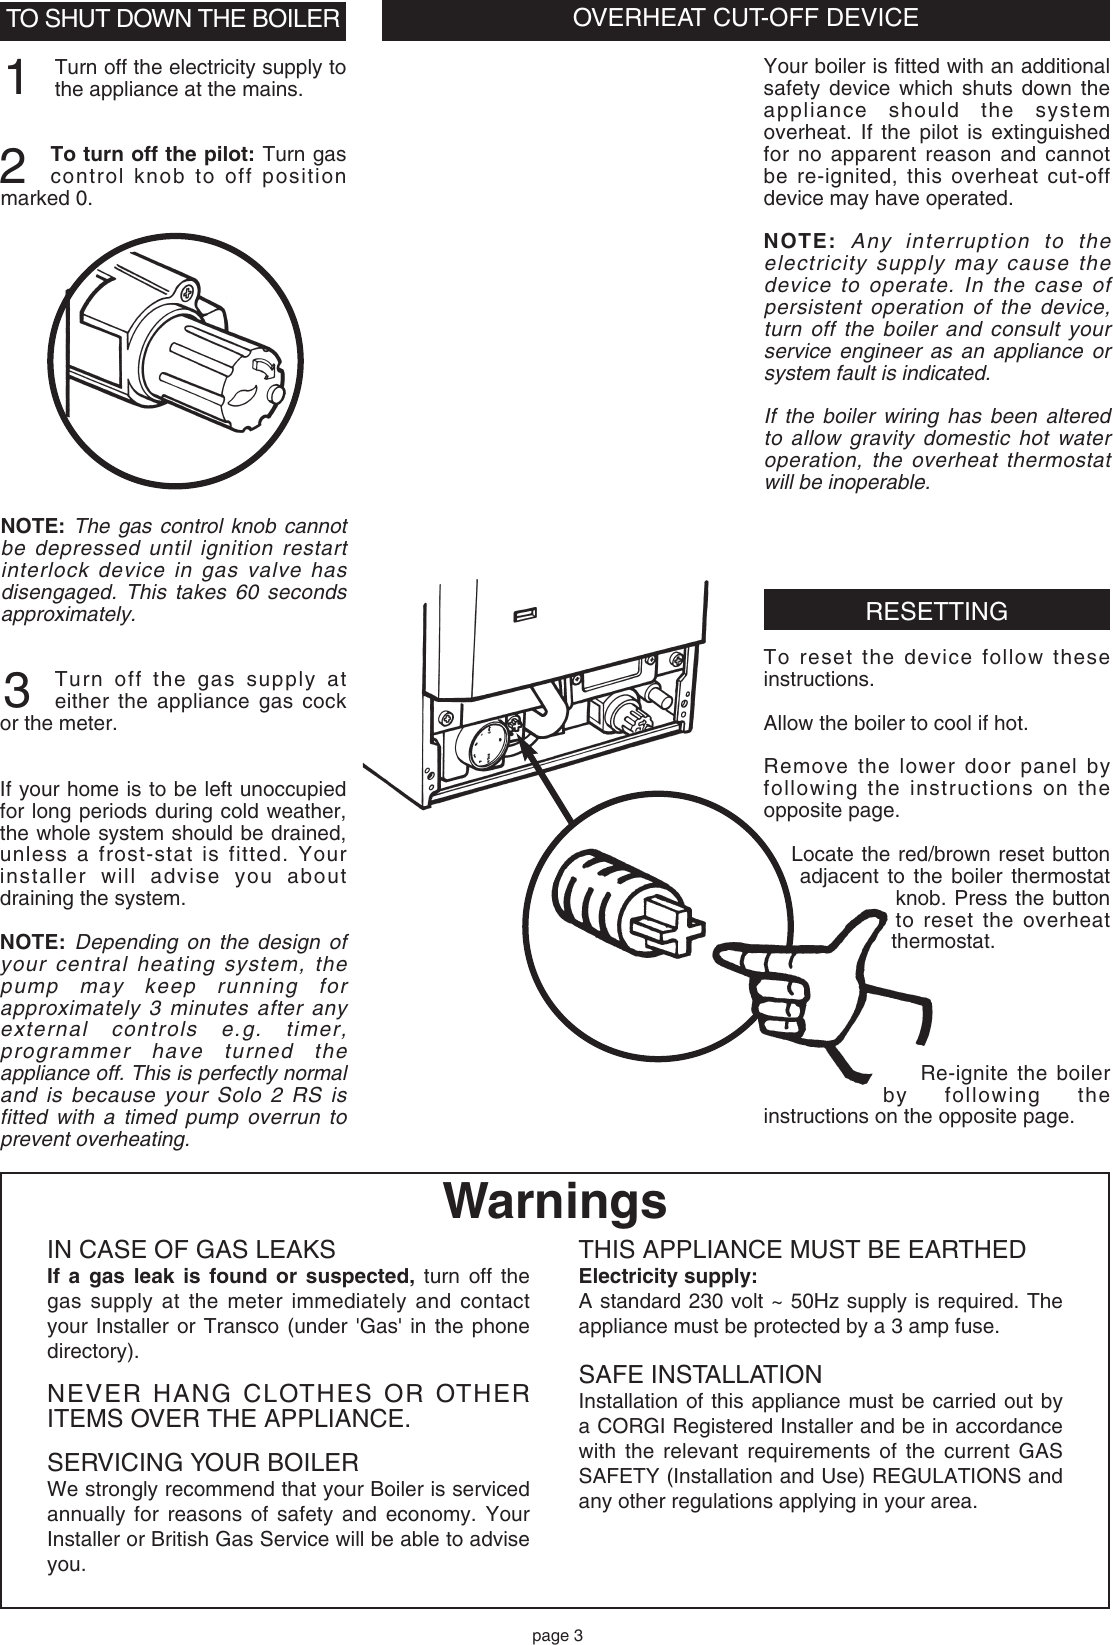 Baxi Solo 2 Rs Owners Manual 232187 Pump Overrun Wiring Page 3 Of 4